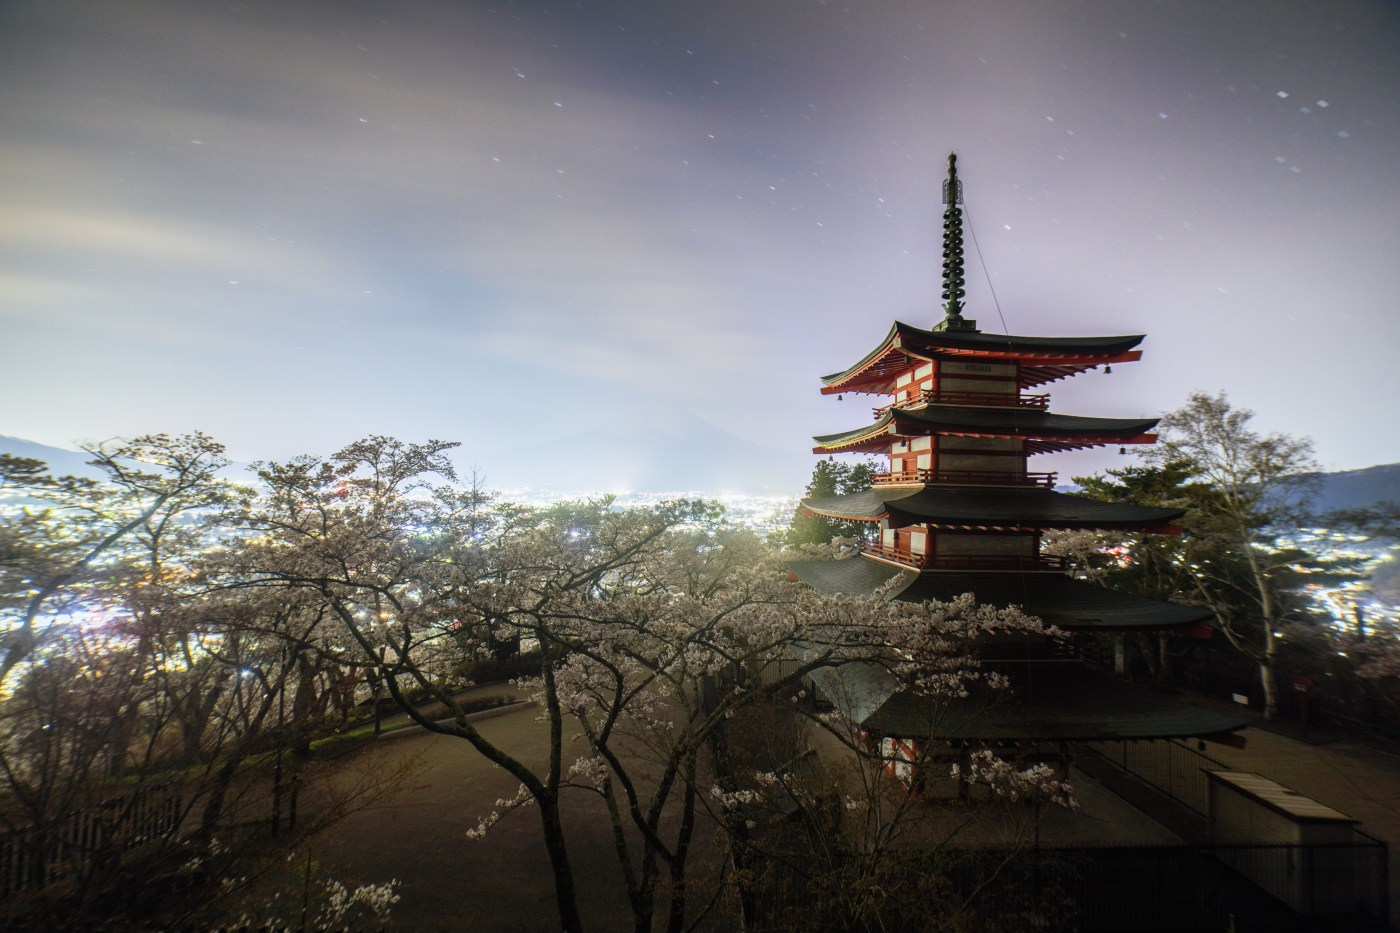 Night View from Chureito Pagoda, Fuji Lake Five Region